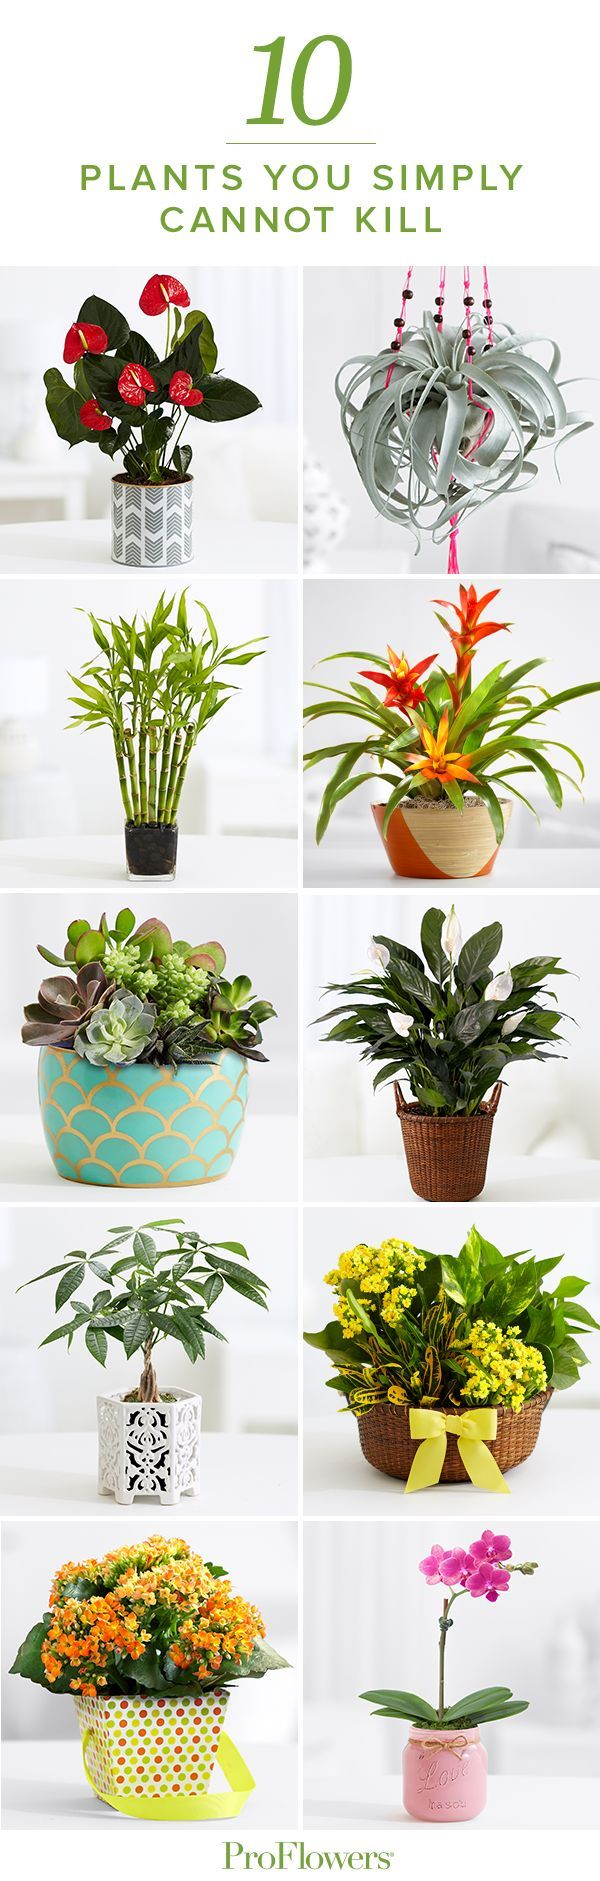 25 best ideas about plants on pinterest plants indoor plant care and cactus terrarium - Indoor water plants list ...